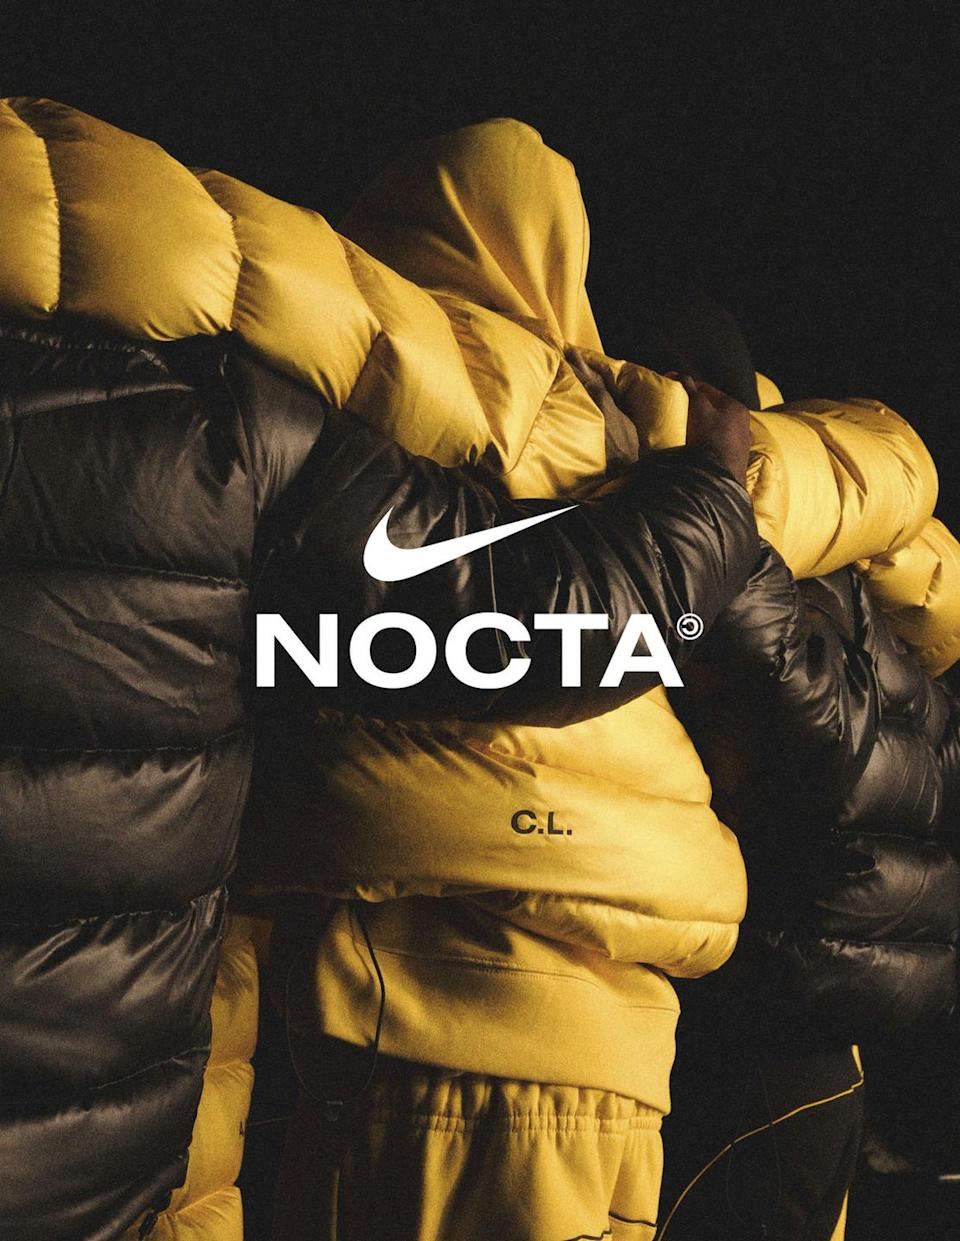 Photo credit: Courtesy Nike Nocta